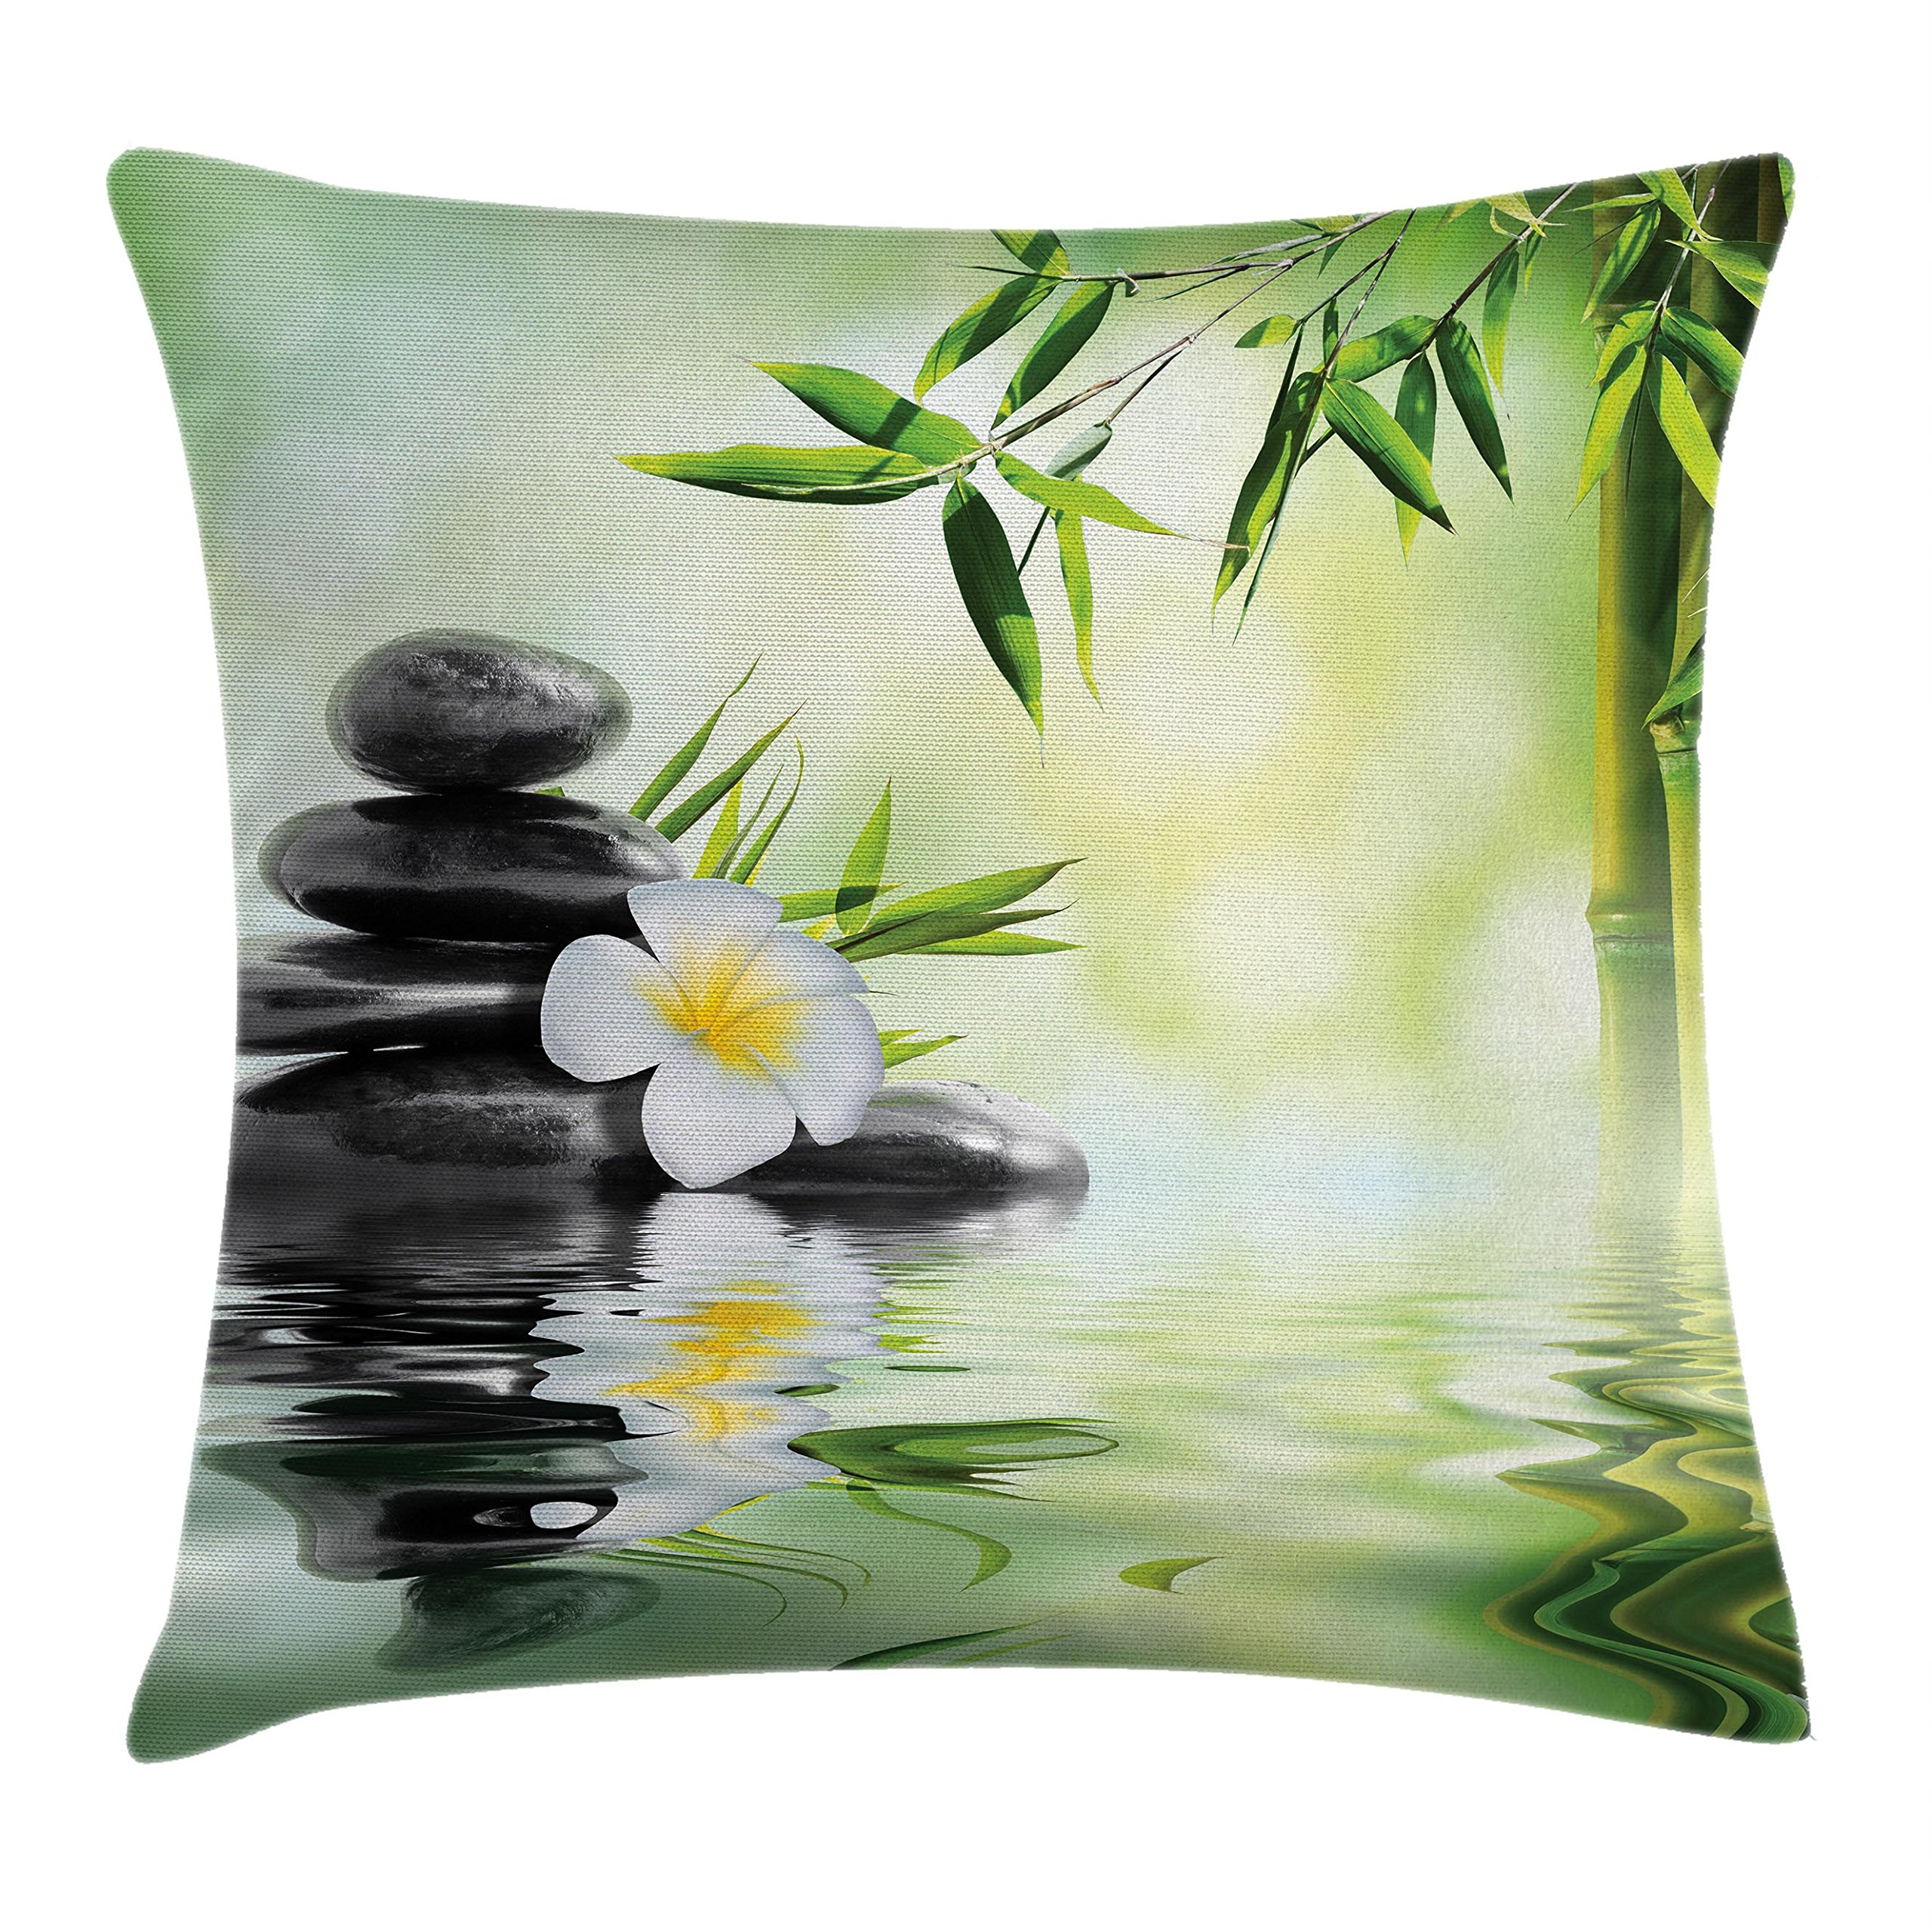 Ambesonne Spa Throw Pillow Cushion Cover, Garden with Frangipani Bamboo Japanese Relaxation Resting Travel, Decorative Square Accent Pillow Case, 20 X 20 Inches, Pale Green Charcoal Grey Yellow